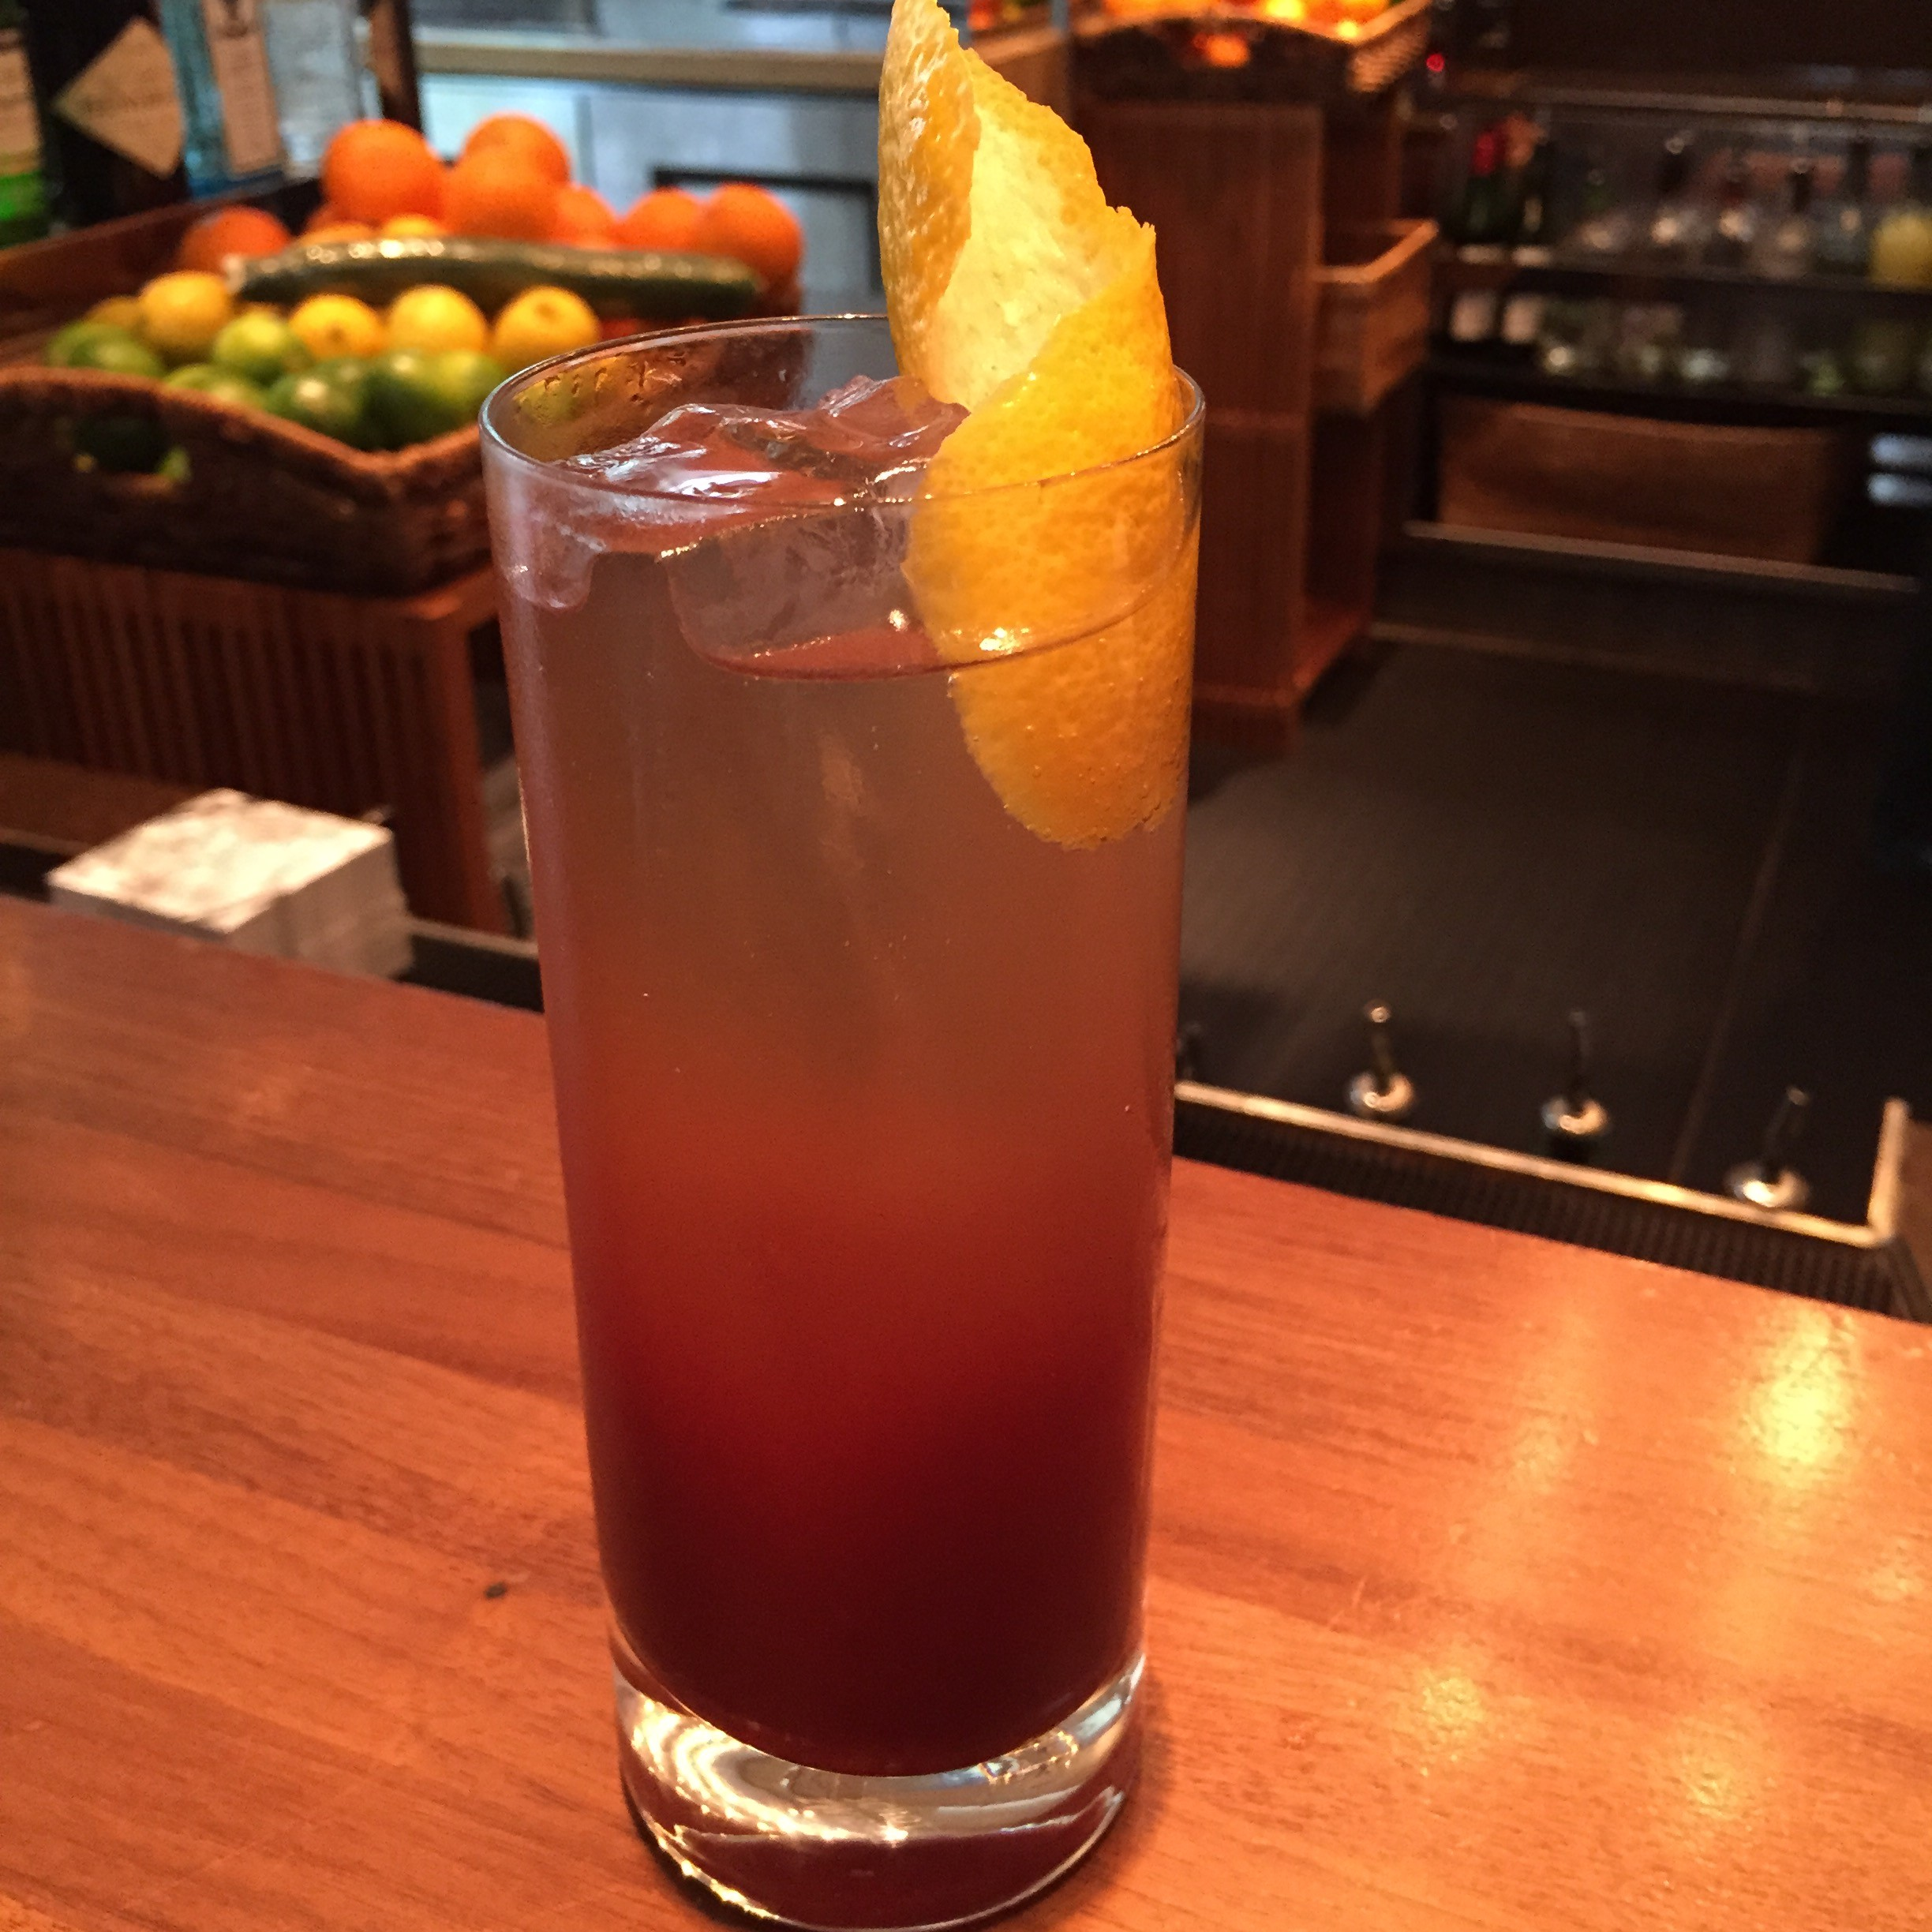 Blue Duck Tavern's summer cocktails include the Cherry Quina made with Plymouth gin, house-made cherry tonic with Bittercube cherry bark bitters and club soda. (Photo: Blue Duck Tavern)